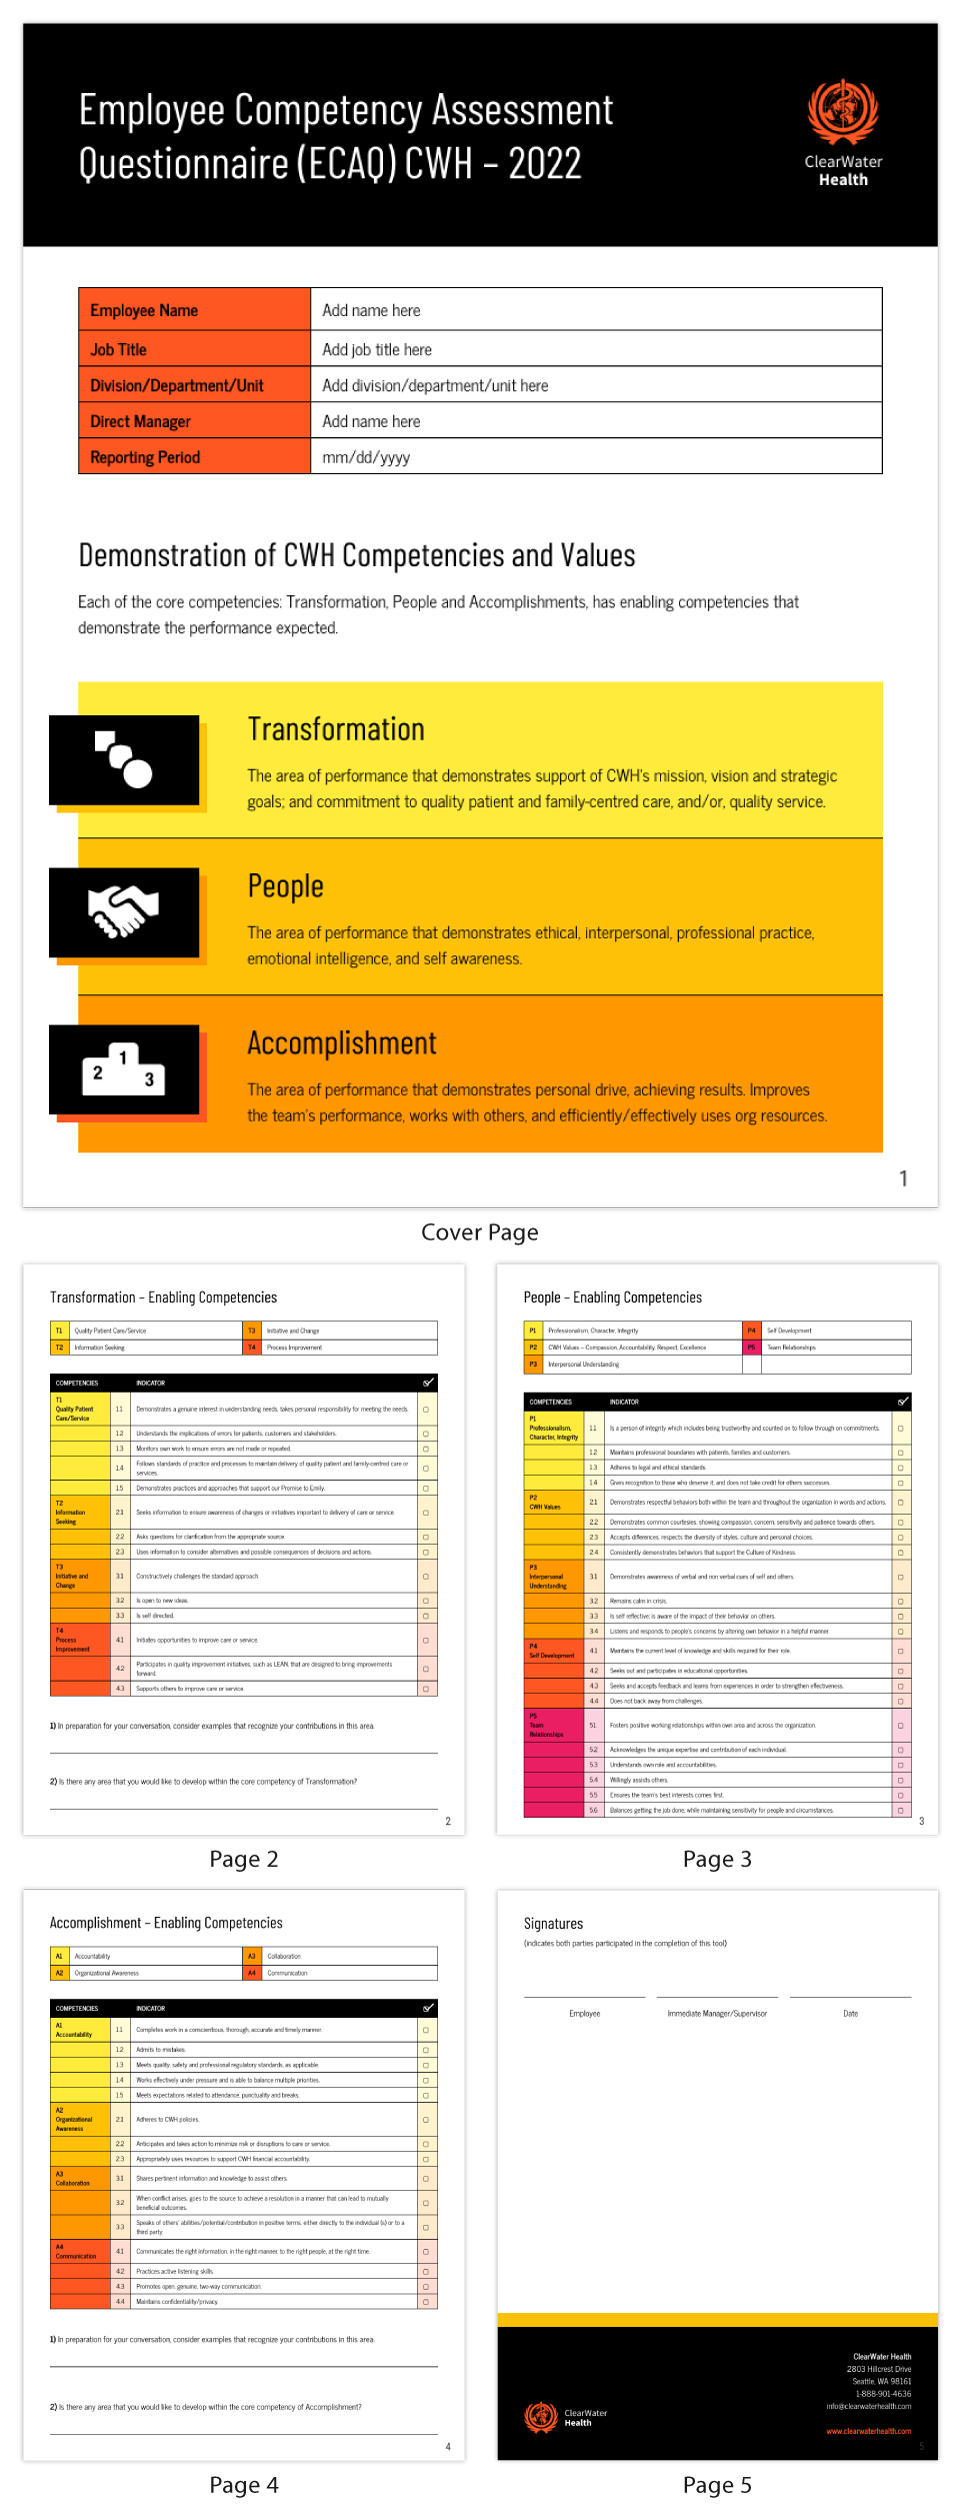 Checklist Infographic Template Health Employee Competency Assessment